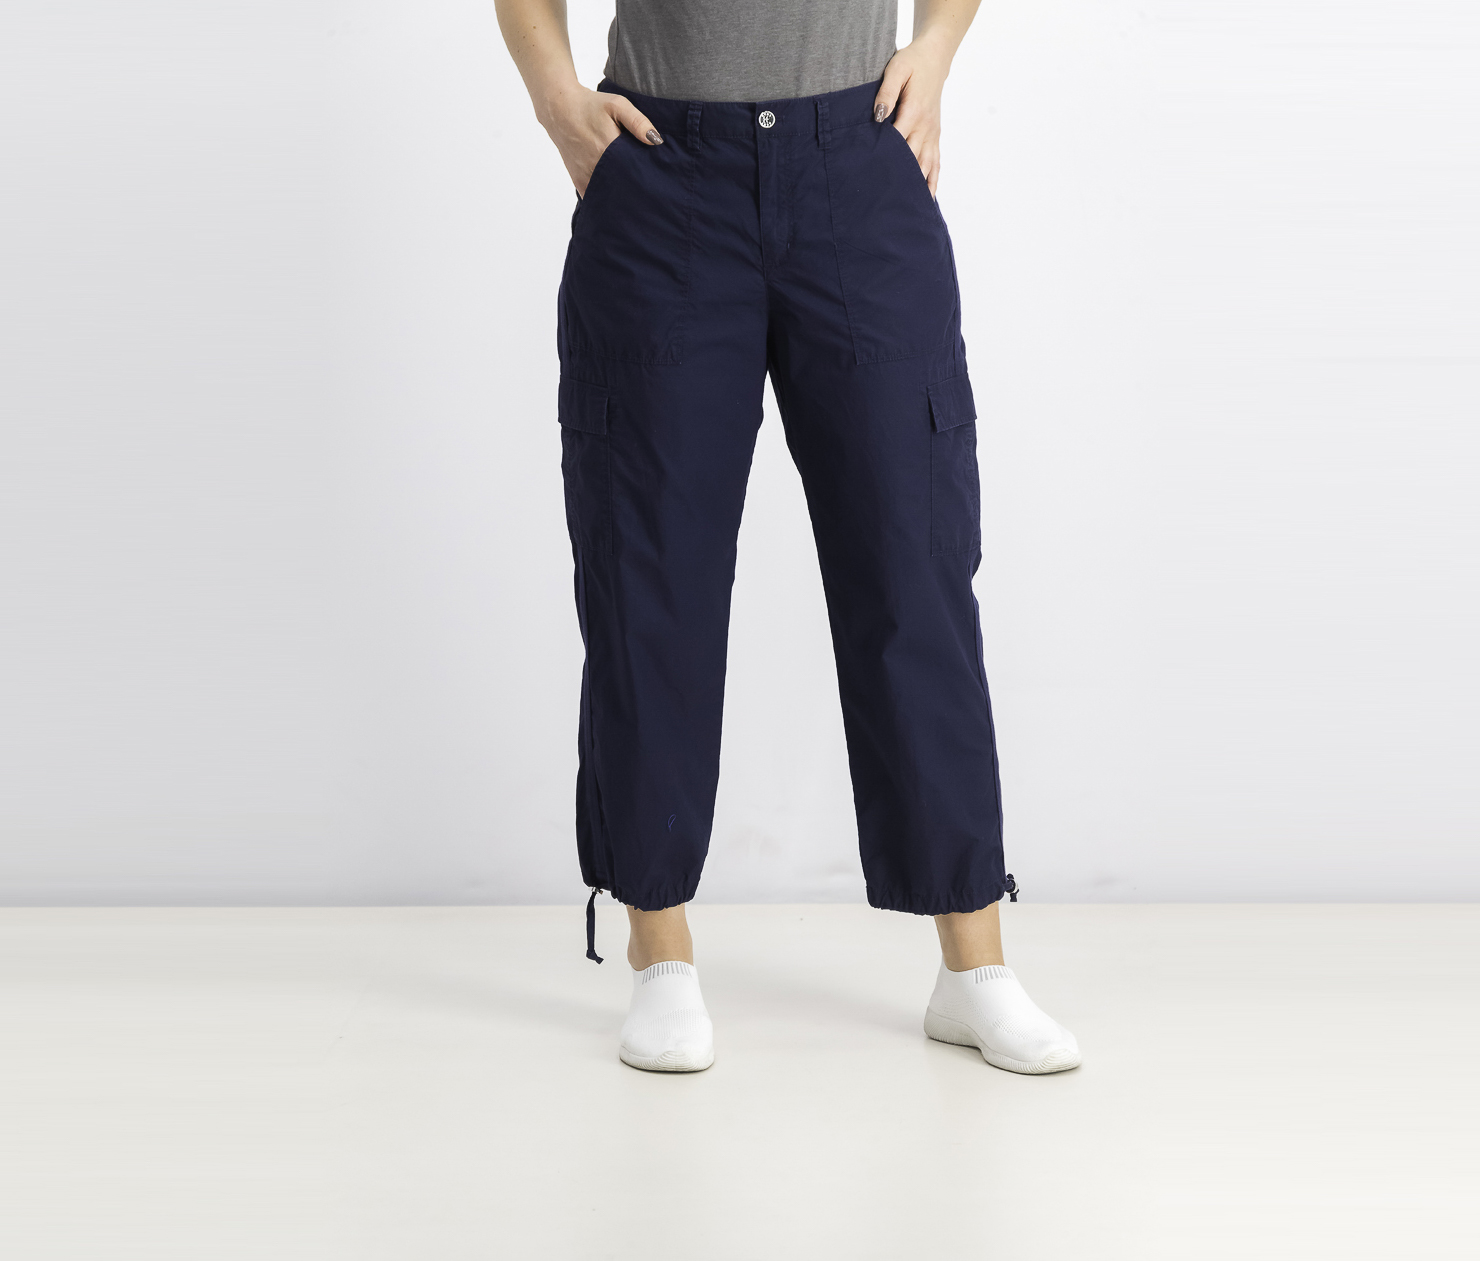 Women's Cotton Cargo Pants, Navy